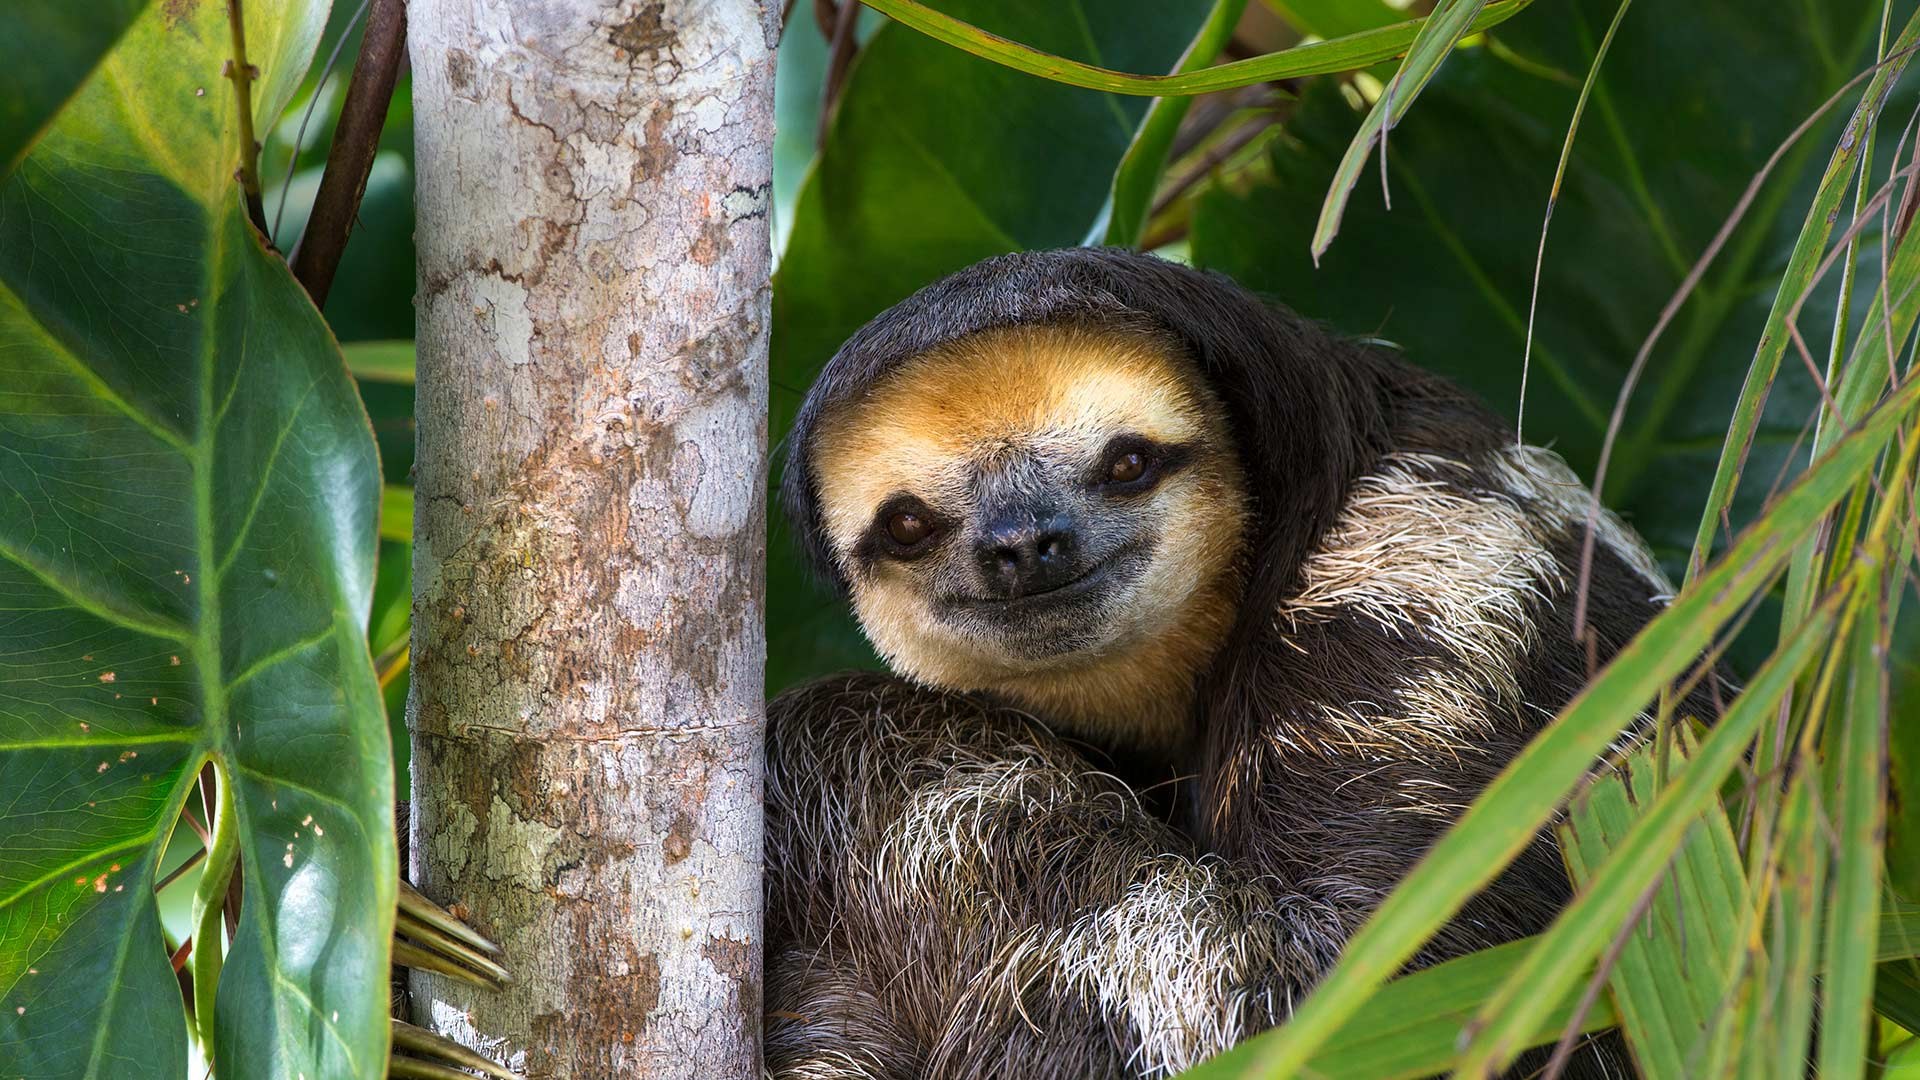 Pale-throated sloth perched in a tree on Sloth Island, Essequibo River, Guyana (© Suzi Eszterhas/Minden Pictures)